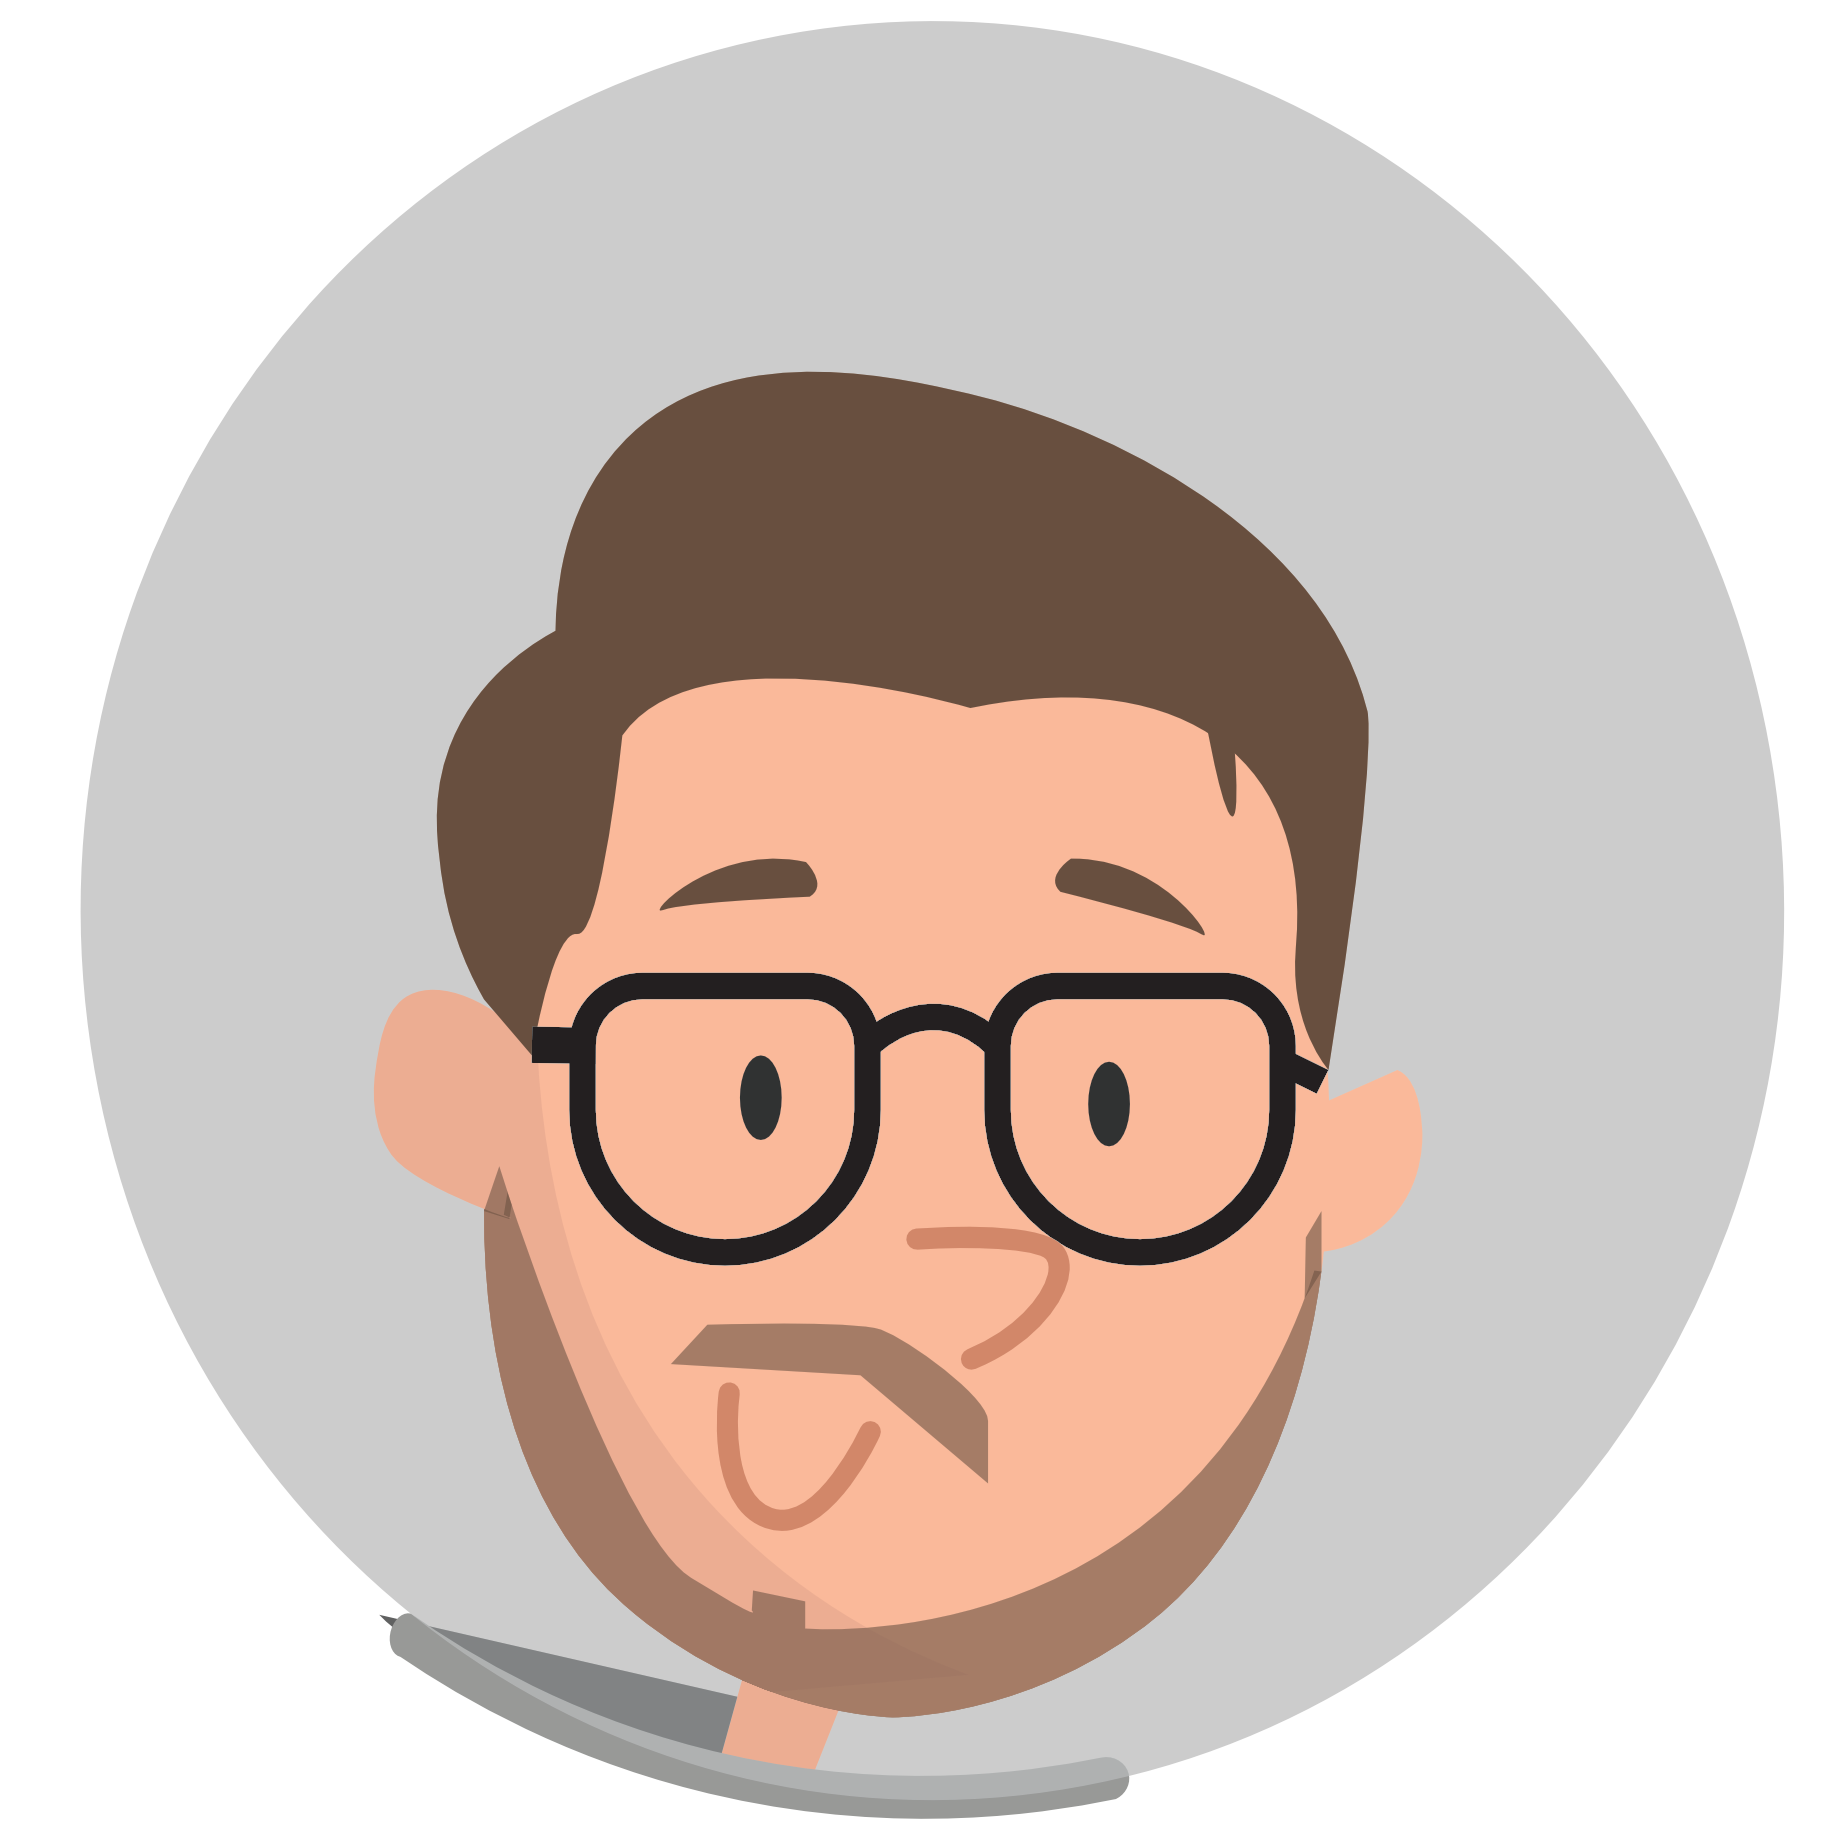 Picture of a man with a beard wearing glasses